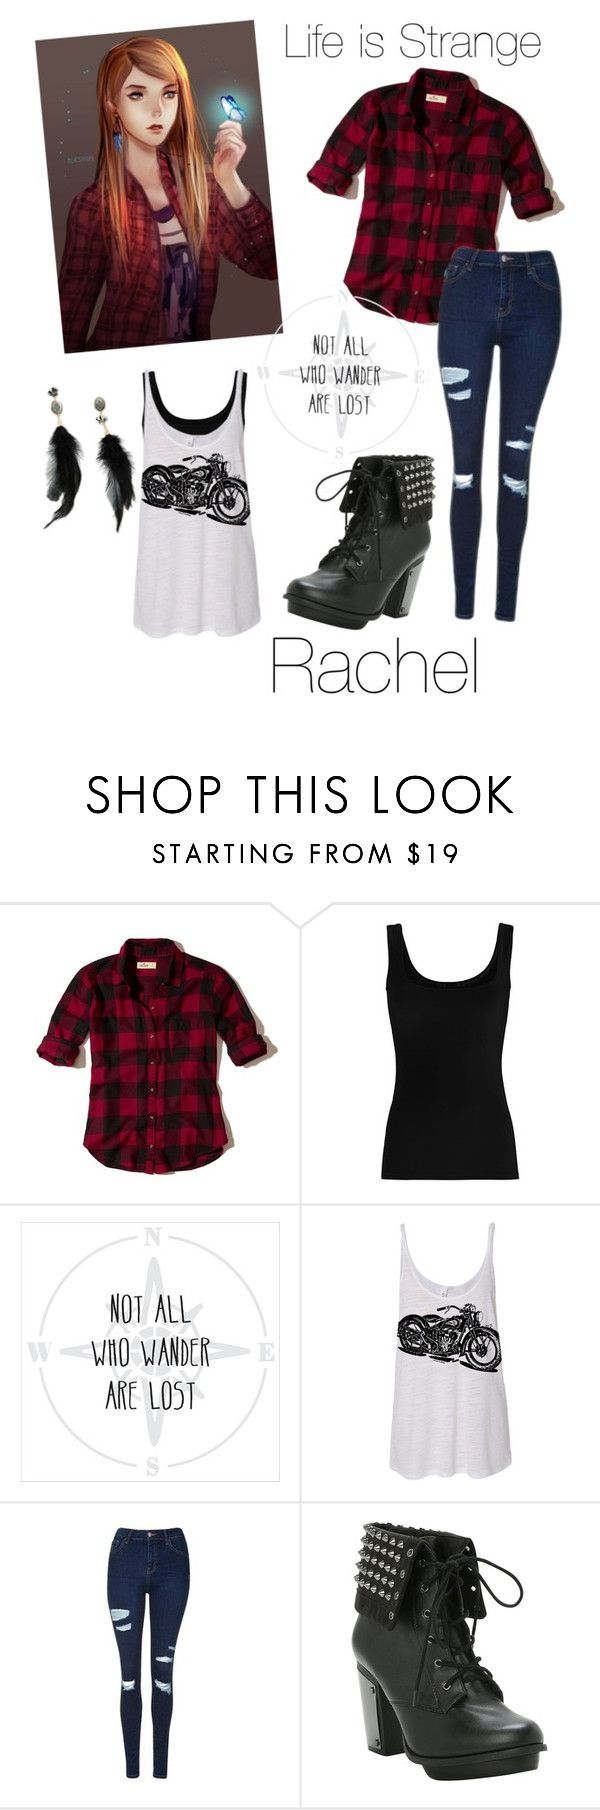 """Life is Strange : Rachel"" by harper-smith ❤ liked on Polyvore featuring Hollister Co., Twenty, Topshop and Betsey Johnson"